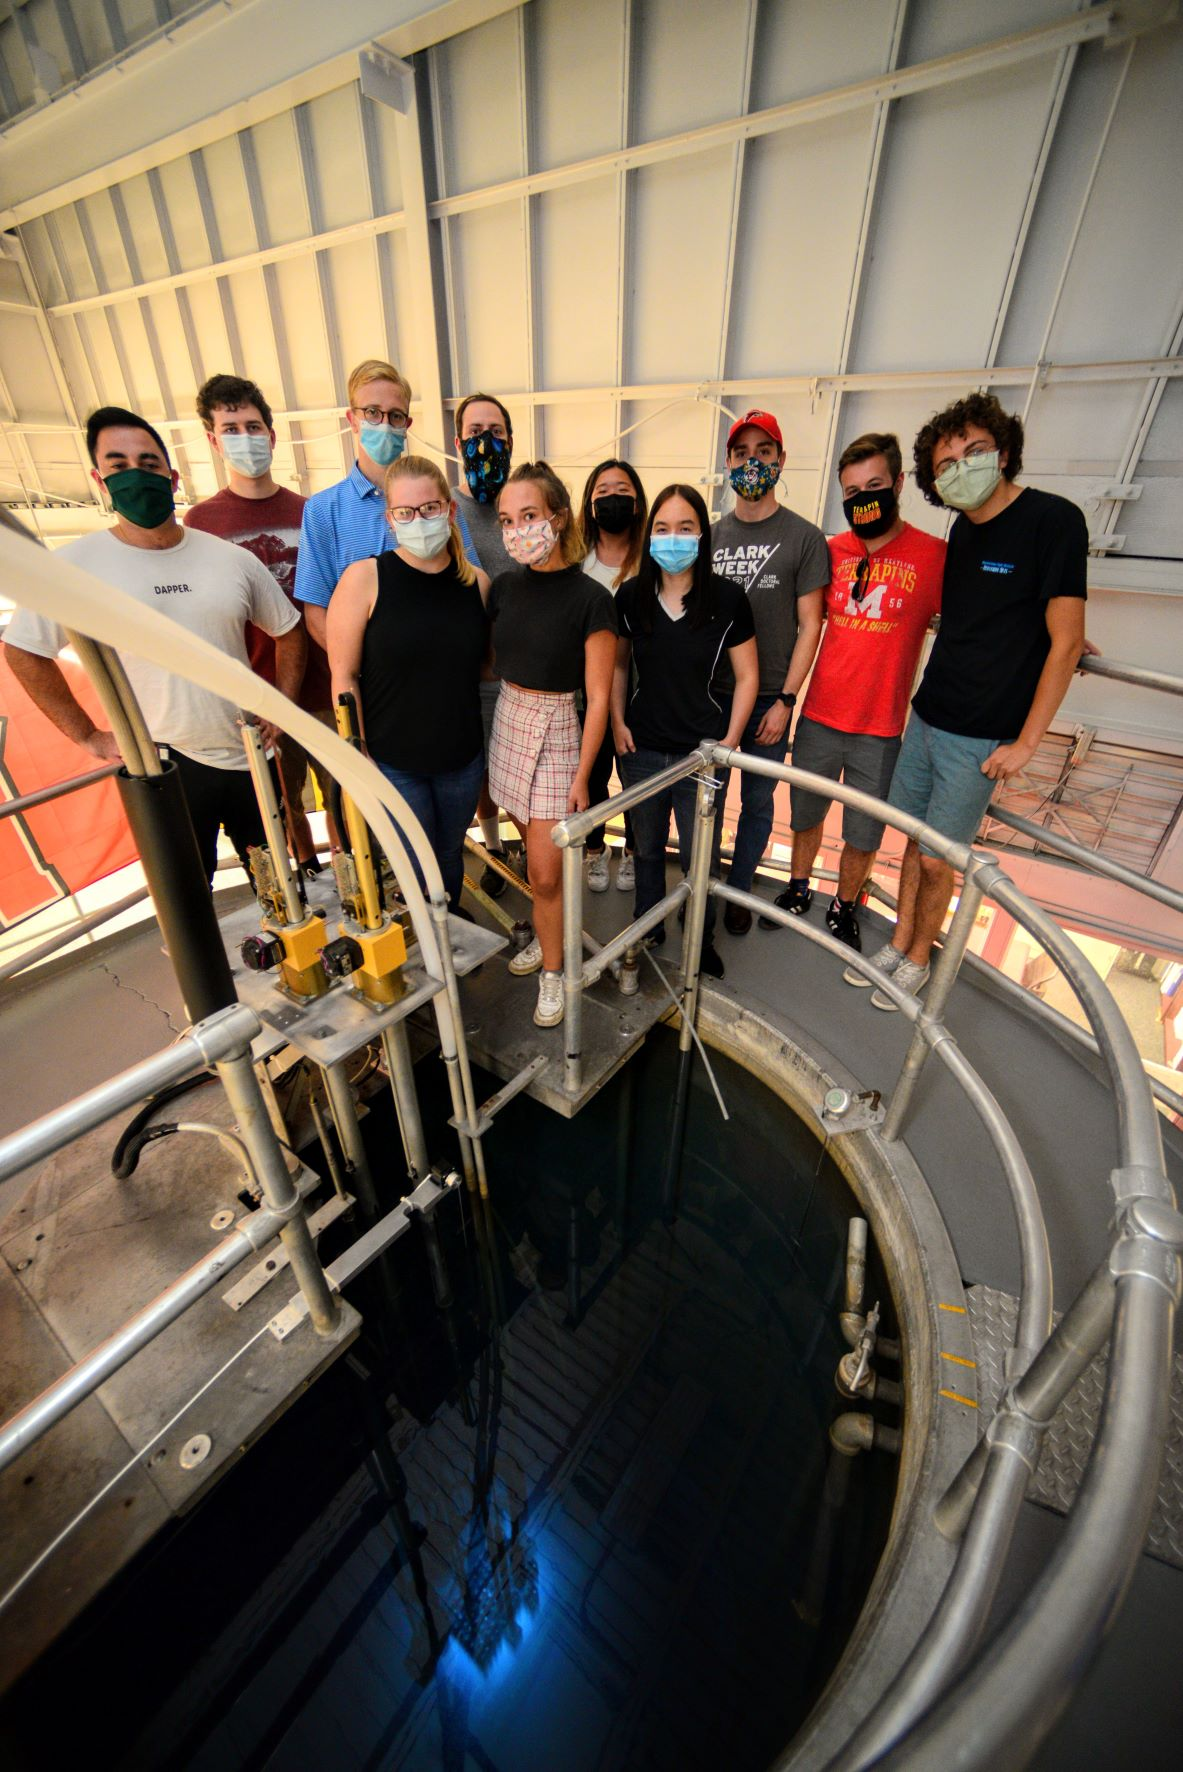 The most recent group of Reactor Operator Trainees touring the radiation facilities.